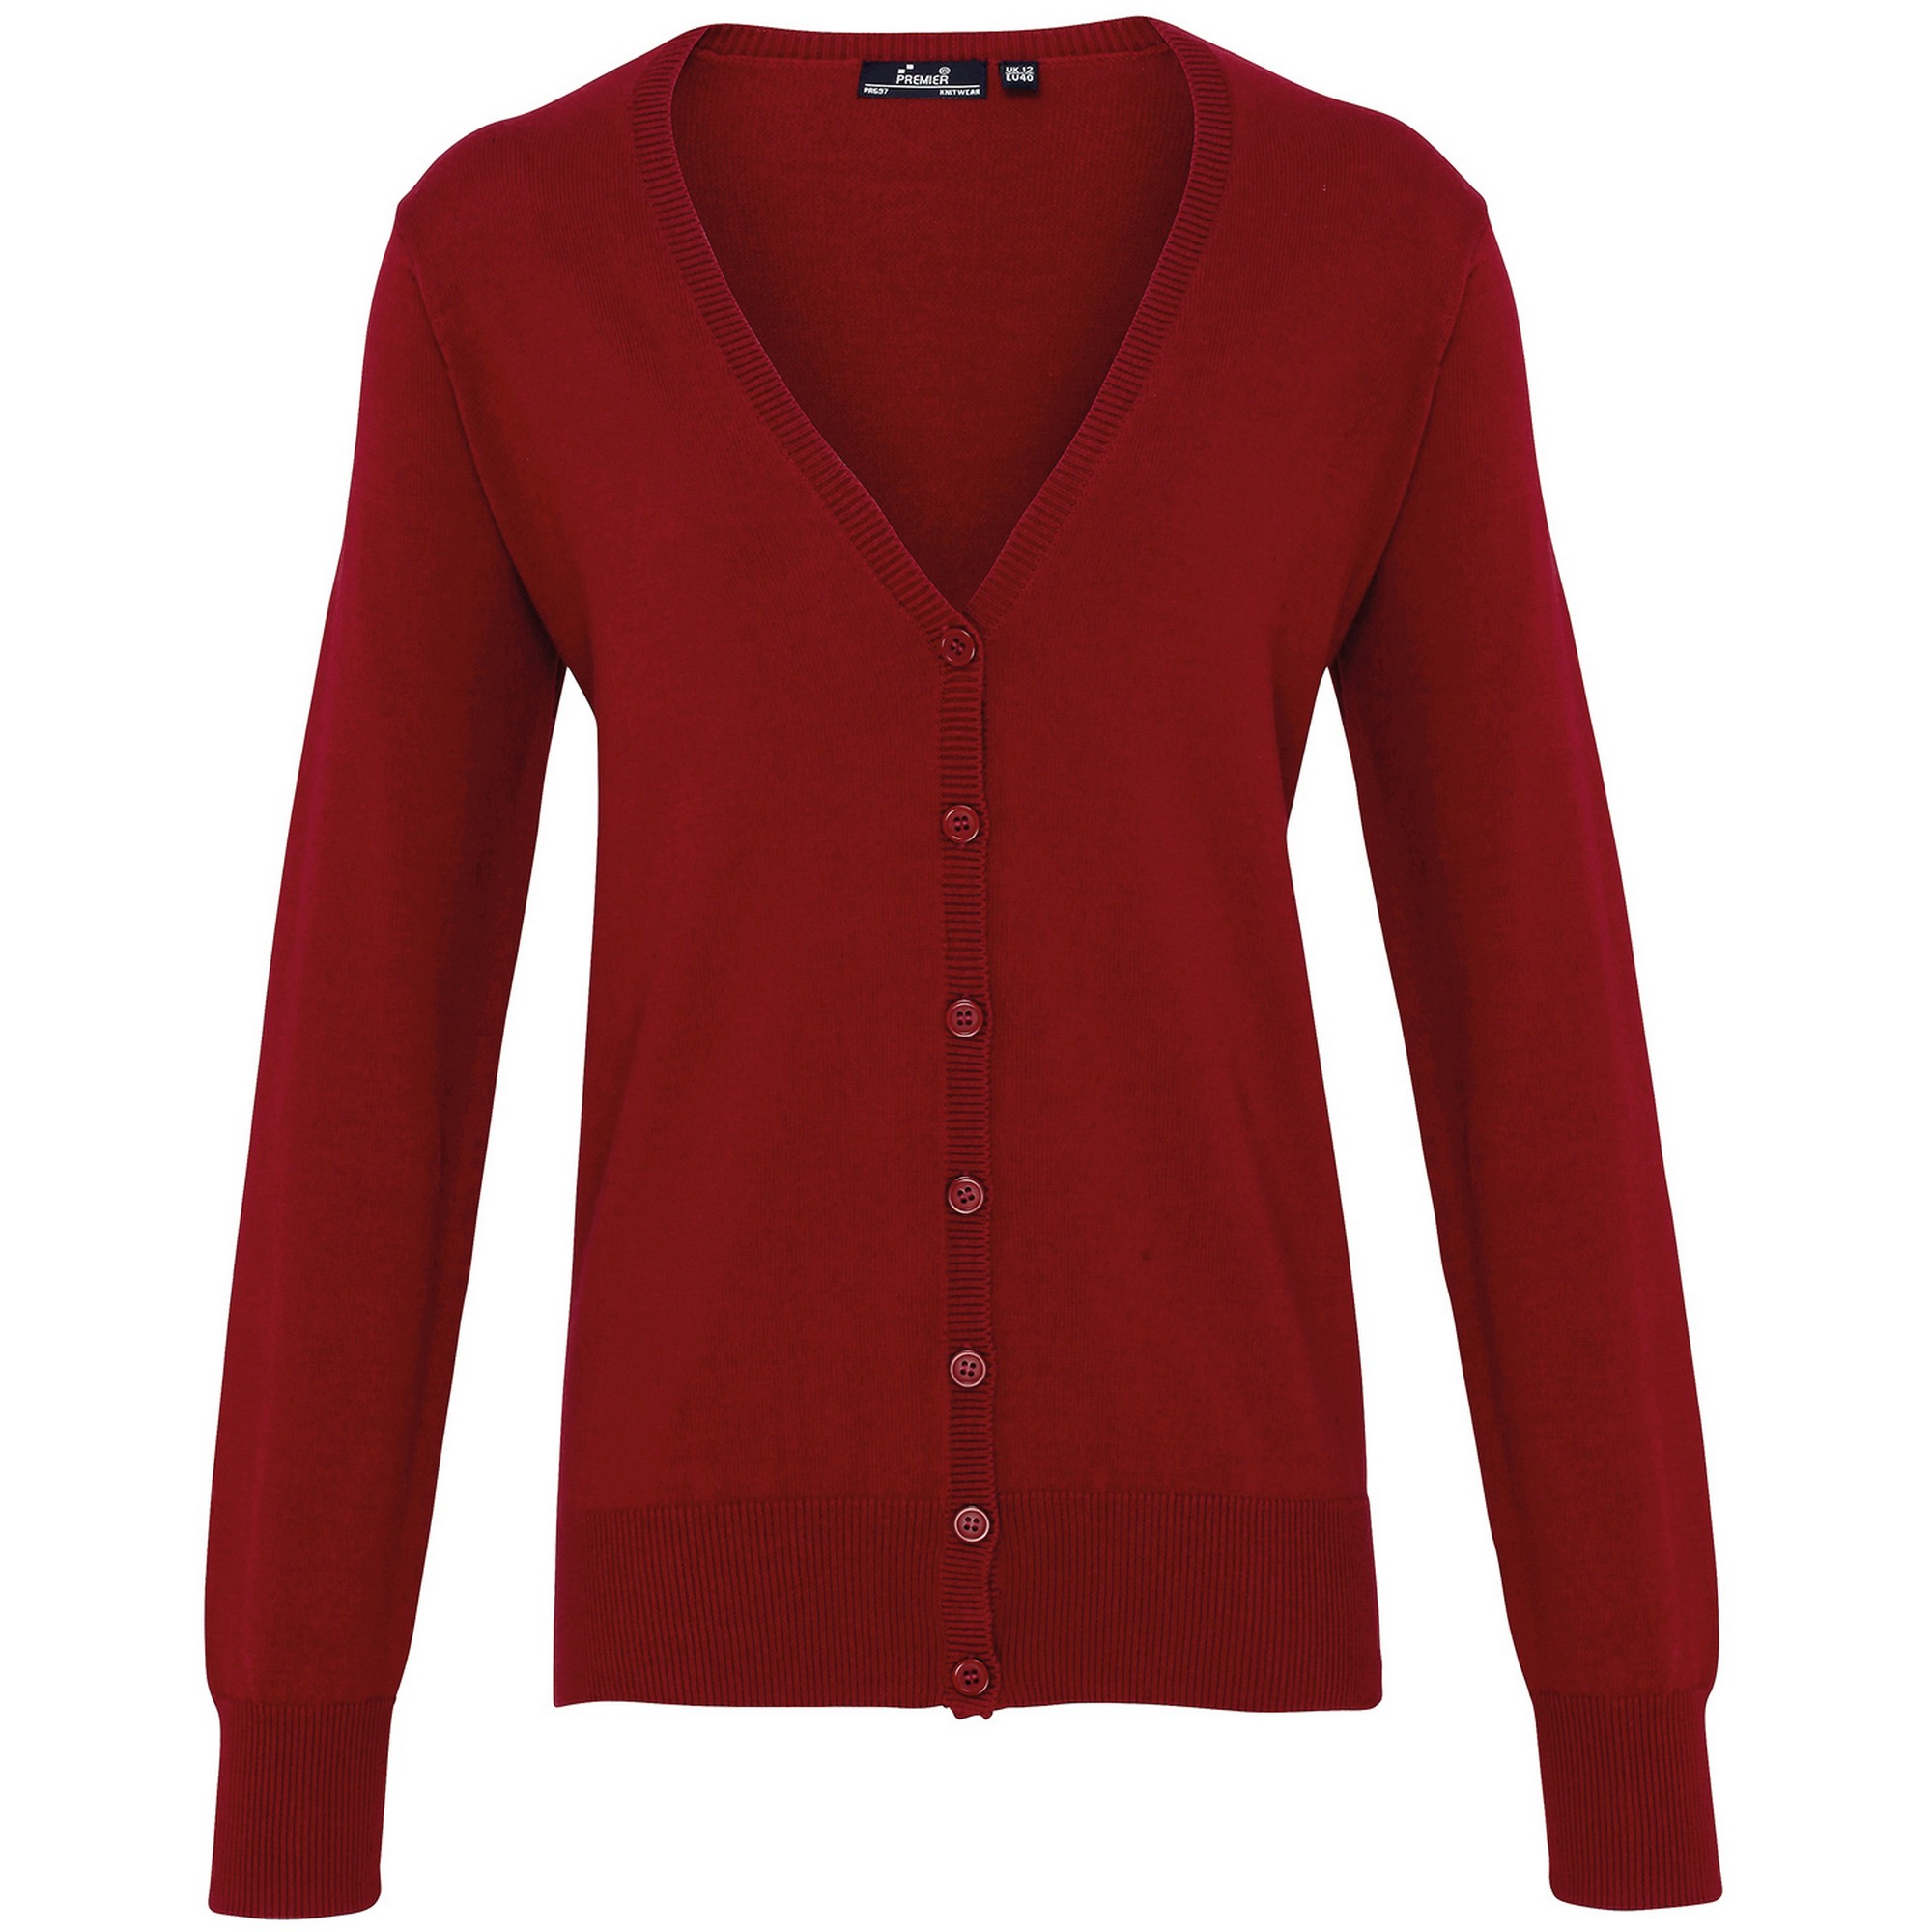 Premier Womens/Ladies Button Through Long Sleeve V-neck Knitted Cardigan (22) (Burgundy)